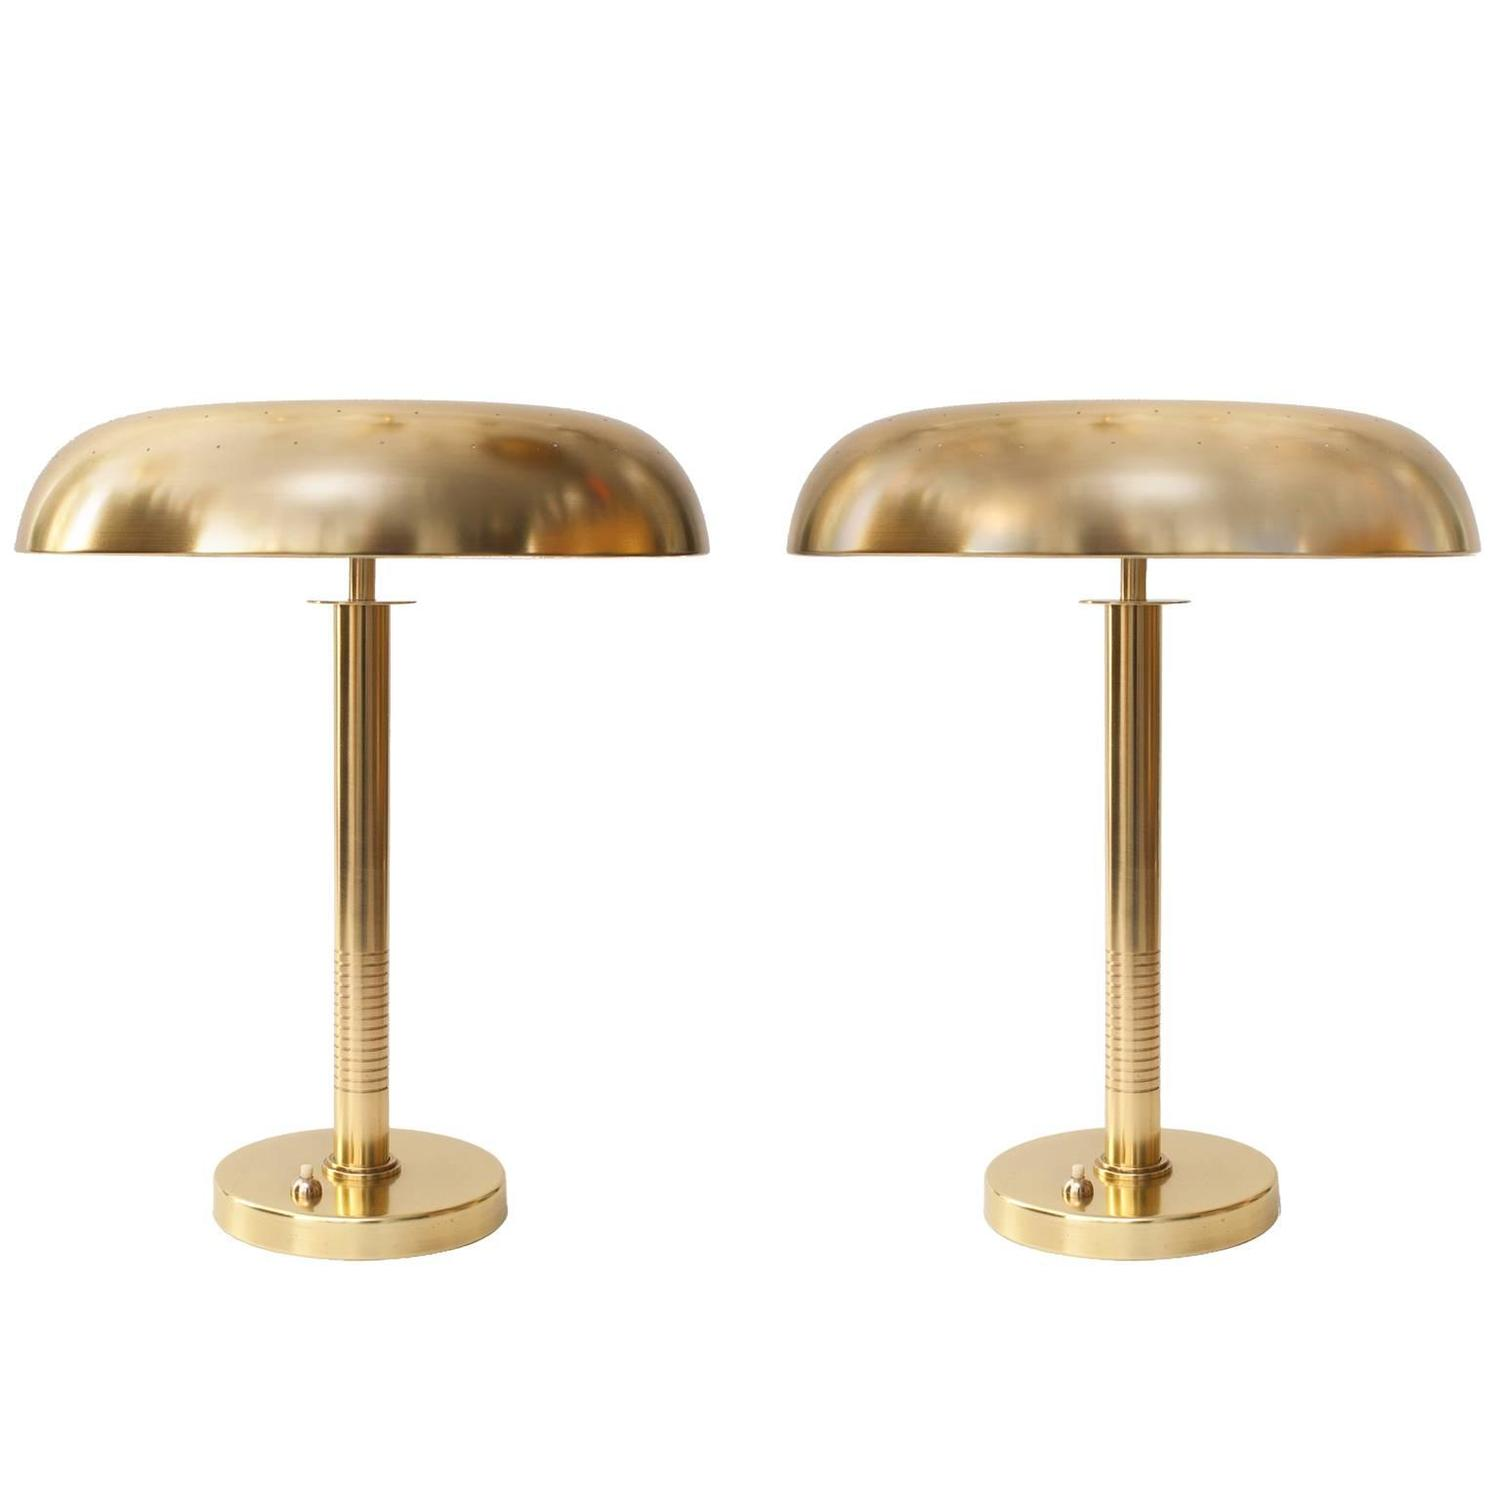 Pair of floor lamps produced by falkenbergs belysning ab in sweden at - Scandinavian Modern Brass Lamps By Bertil Brisborg